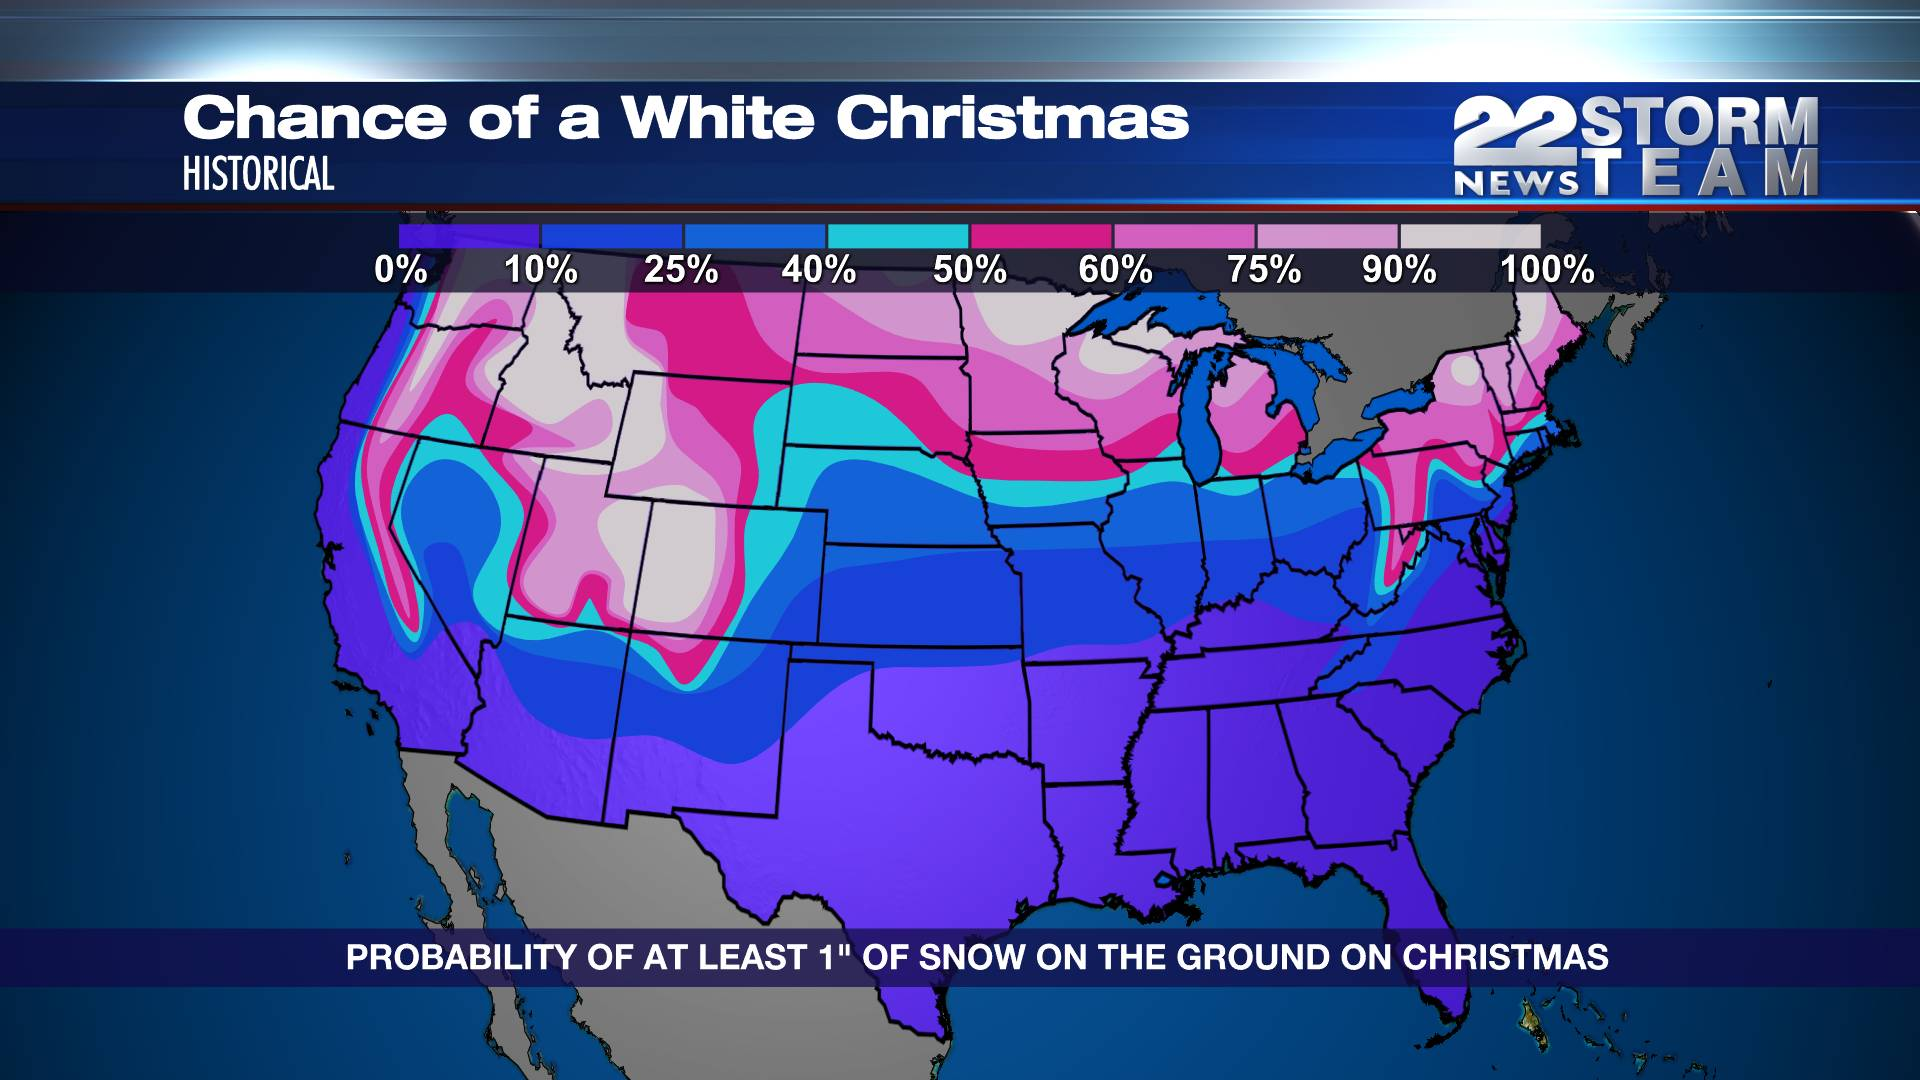 Historical chances of a white Christmas | WWLP